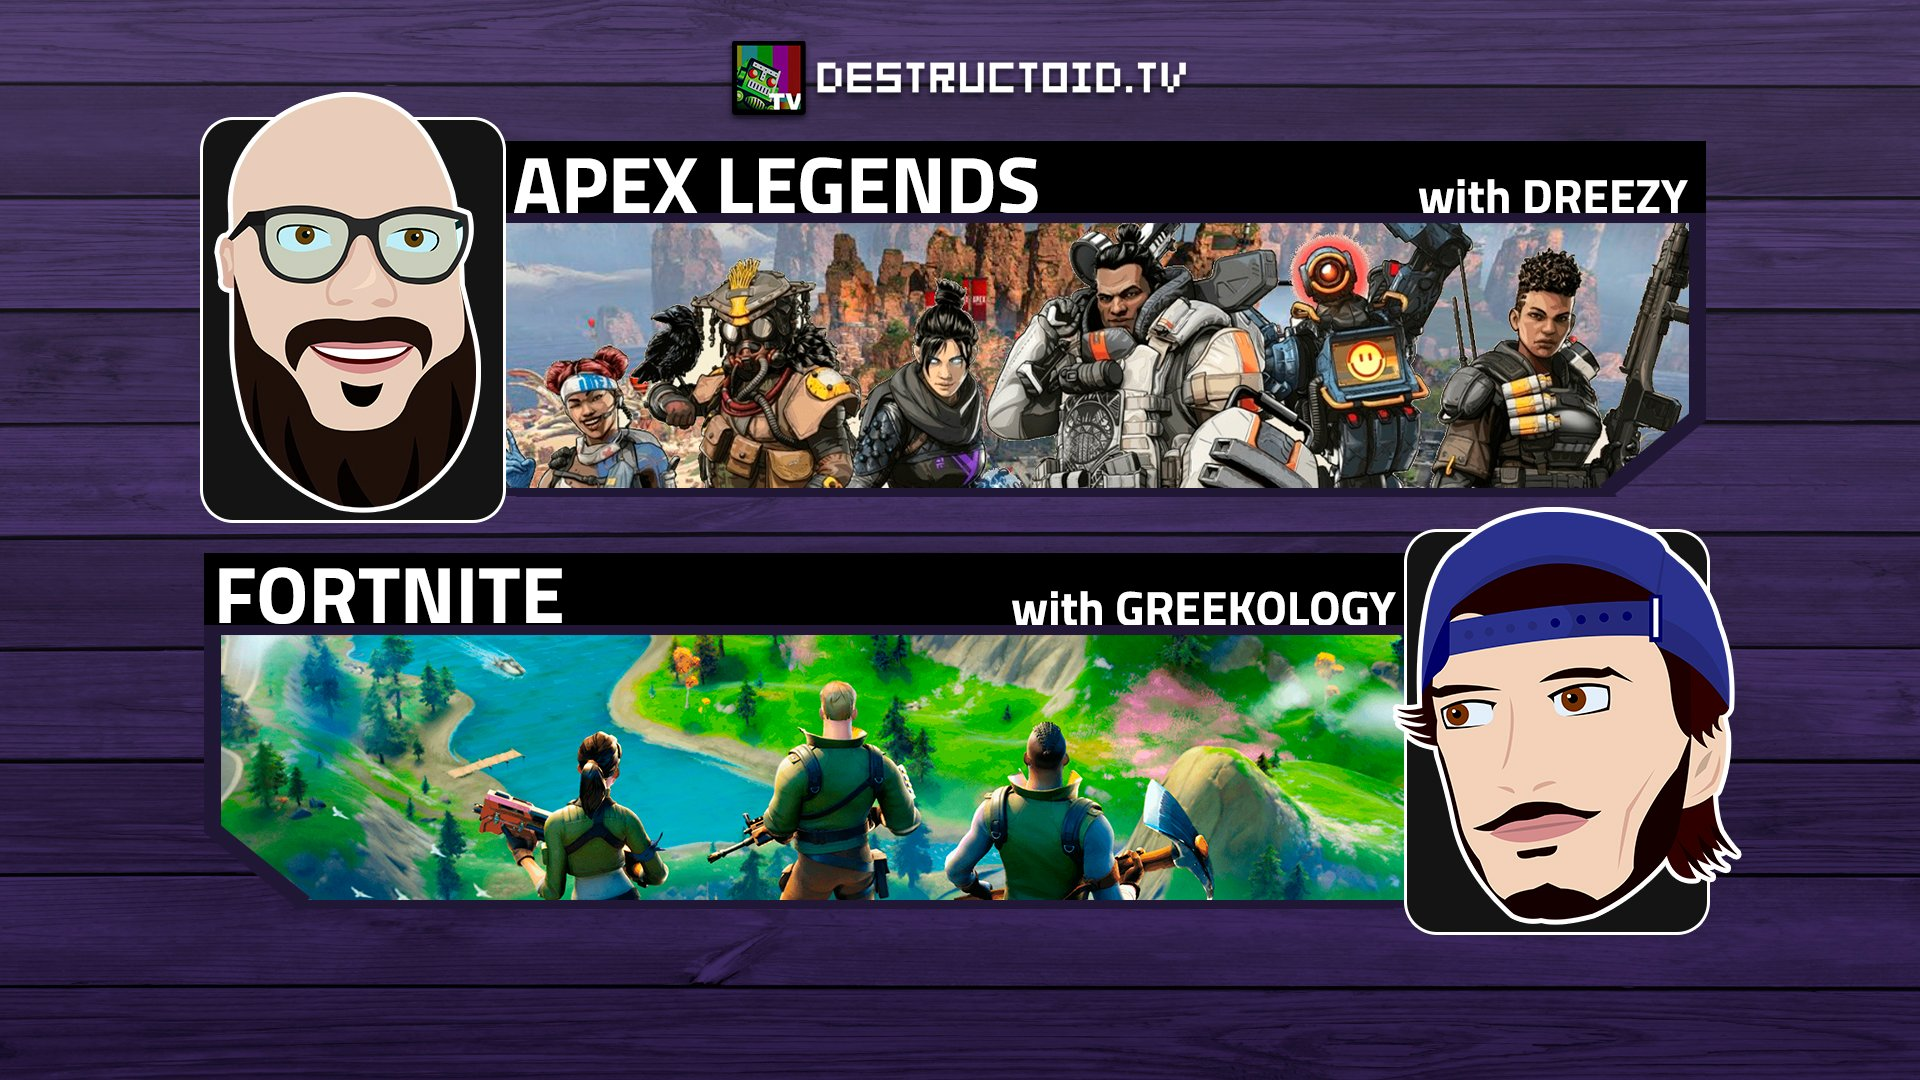 We're live again on Twitch this week with Dreezy and newcomer Greekology!